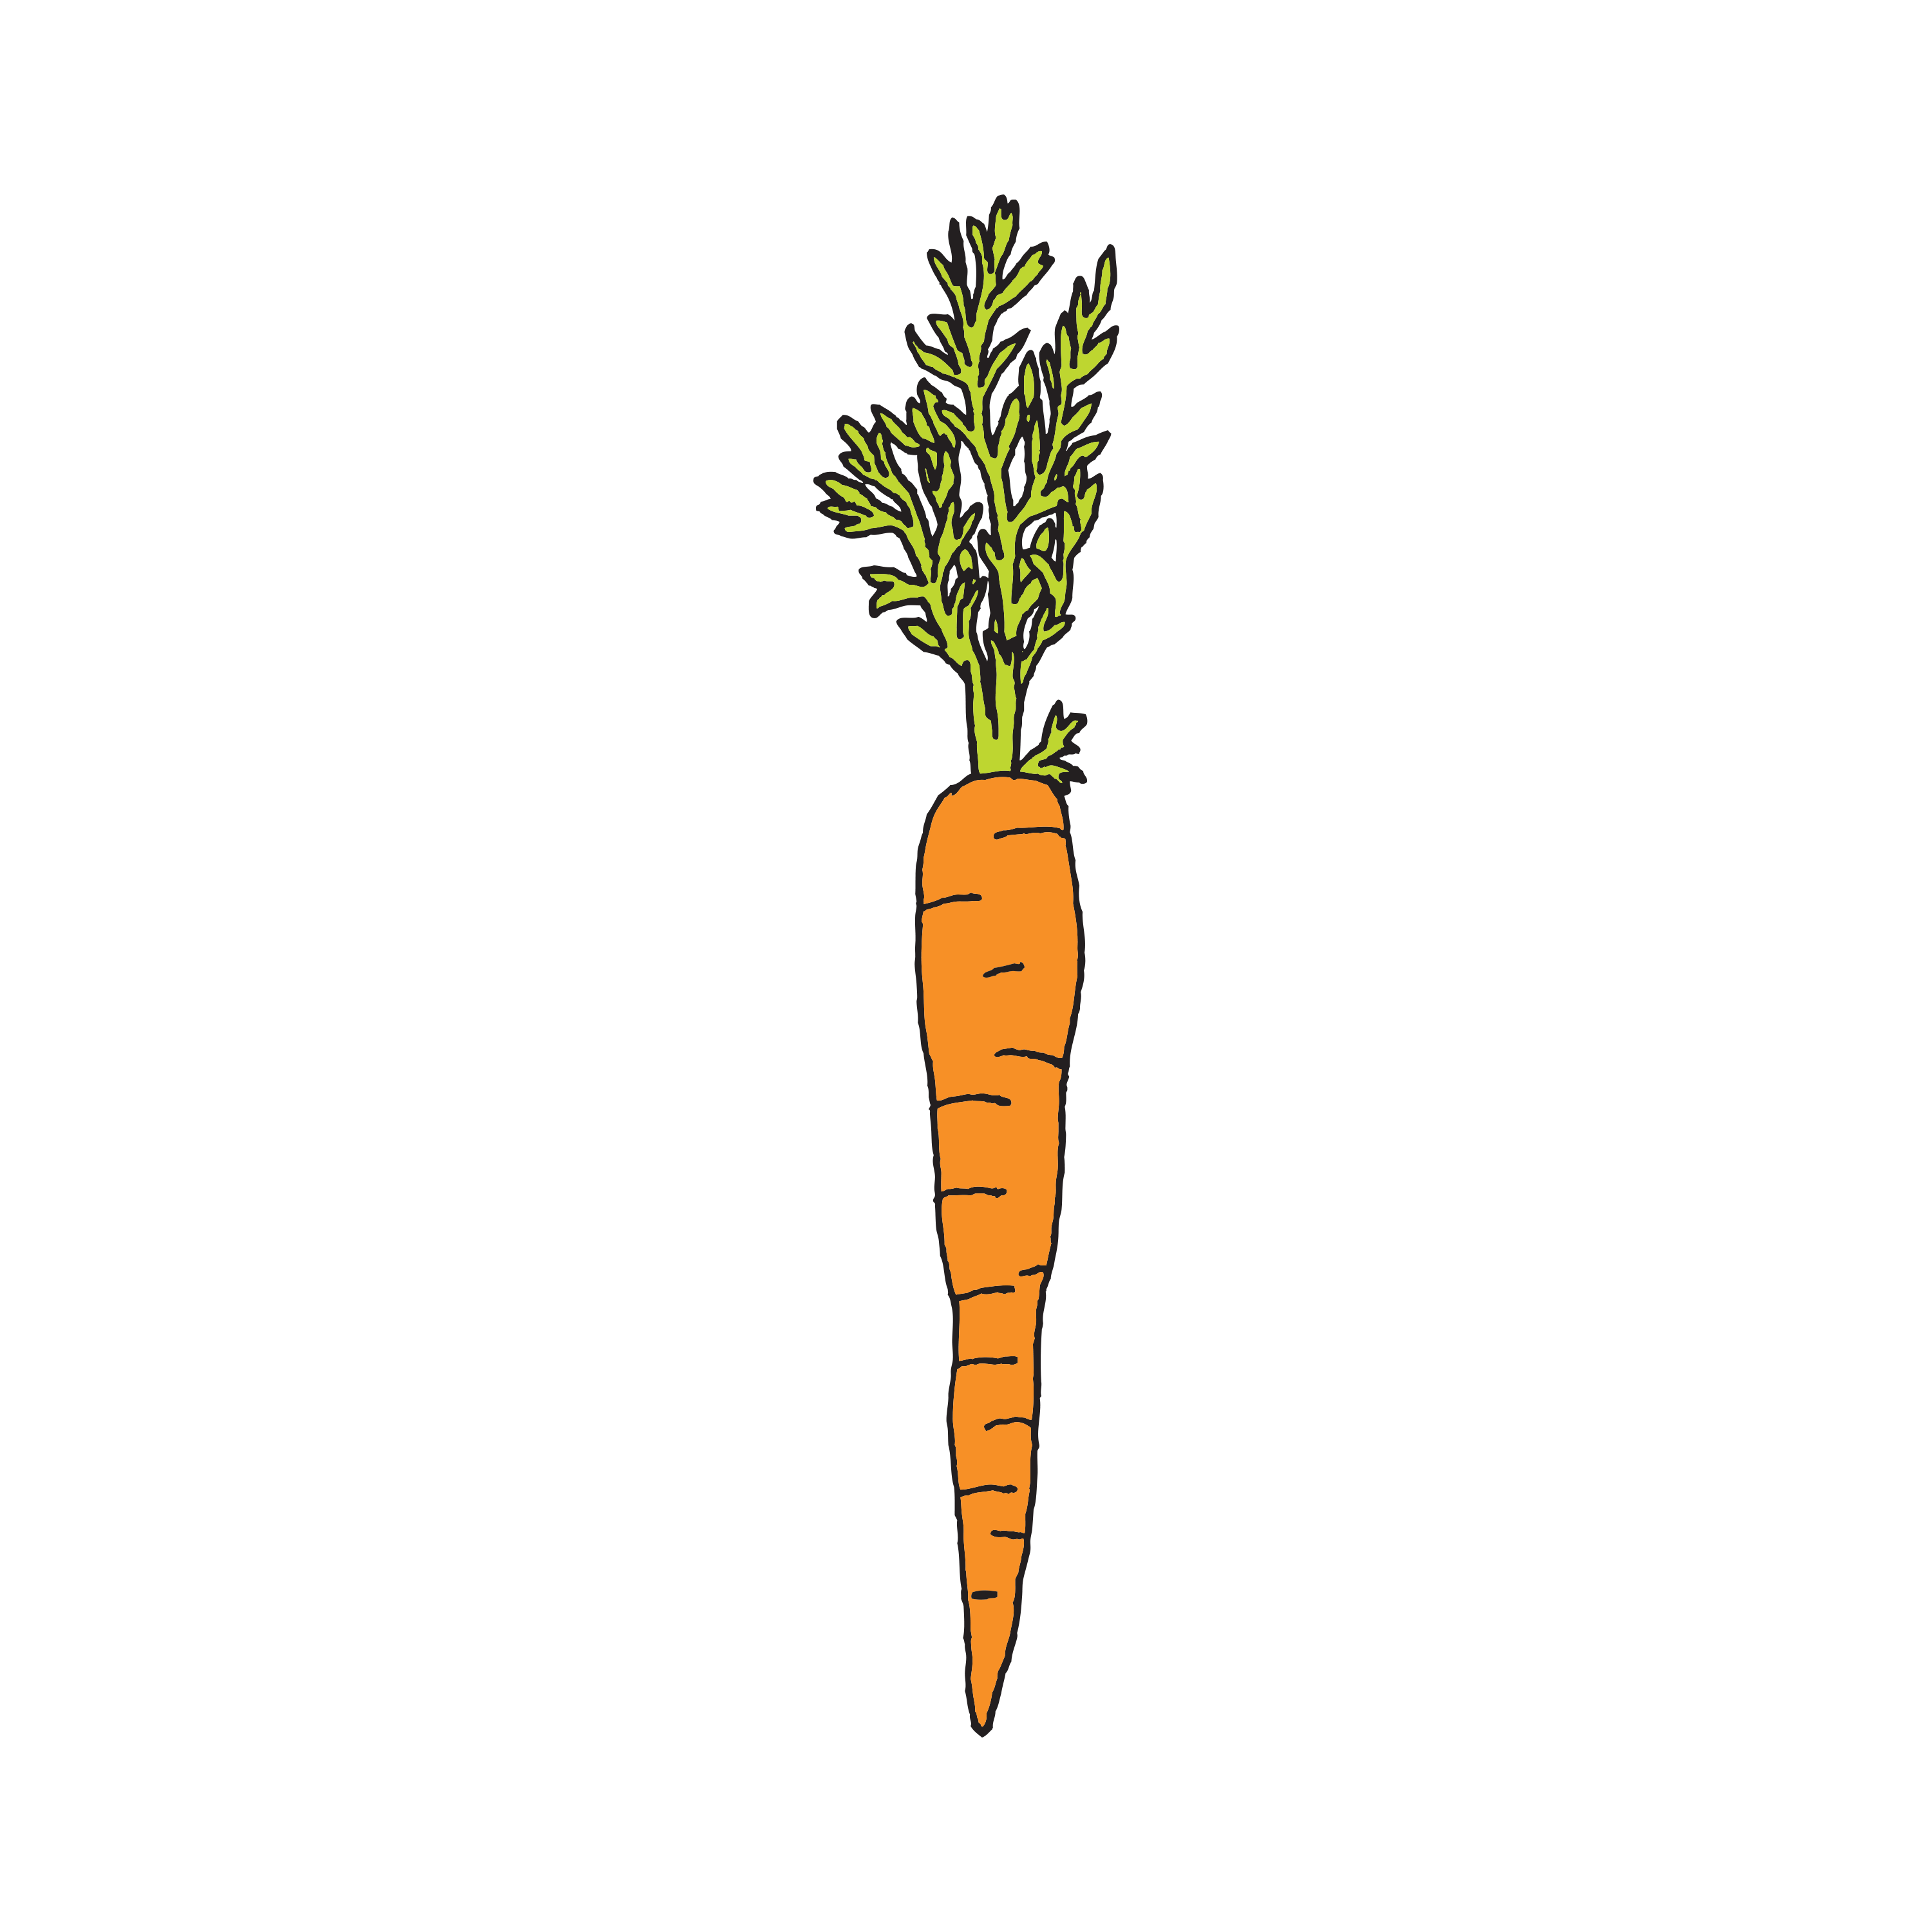 Drawing vegetable diet. Carrot by julia rothman